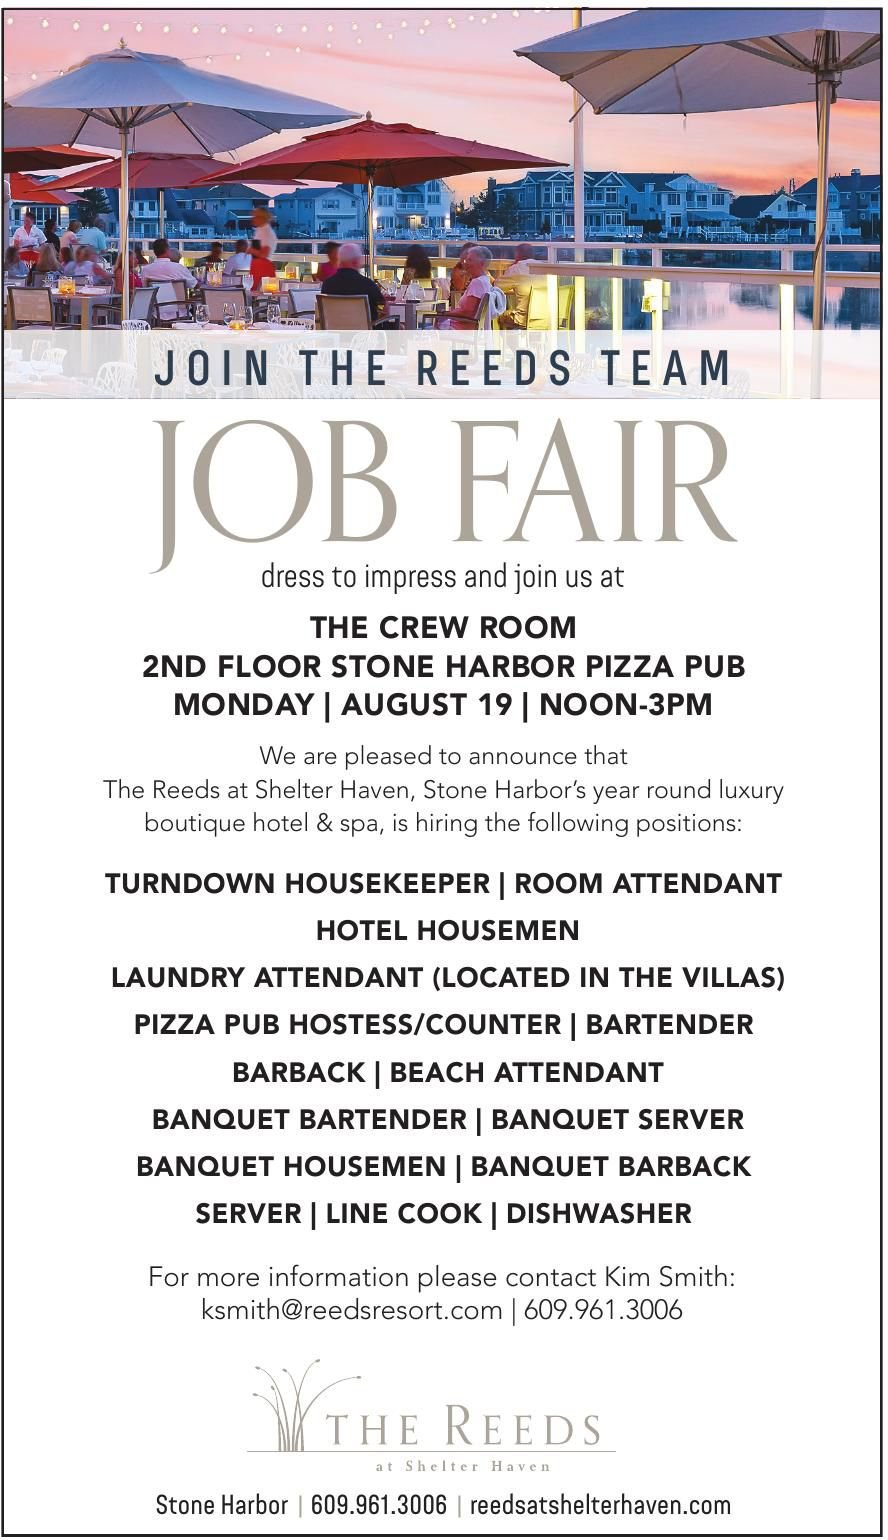 JOB FAIR MON., AUG. 19, NOON - 3PM